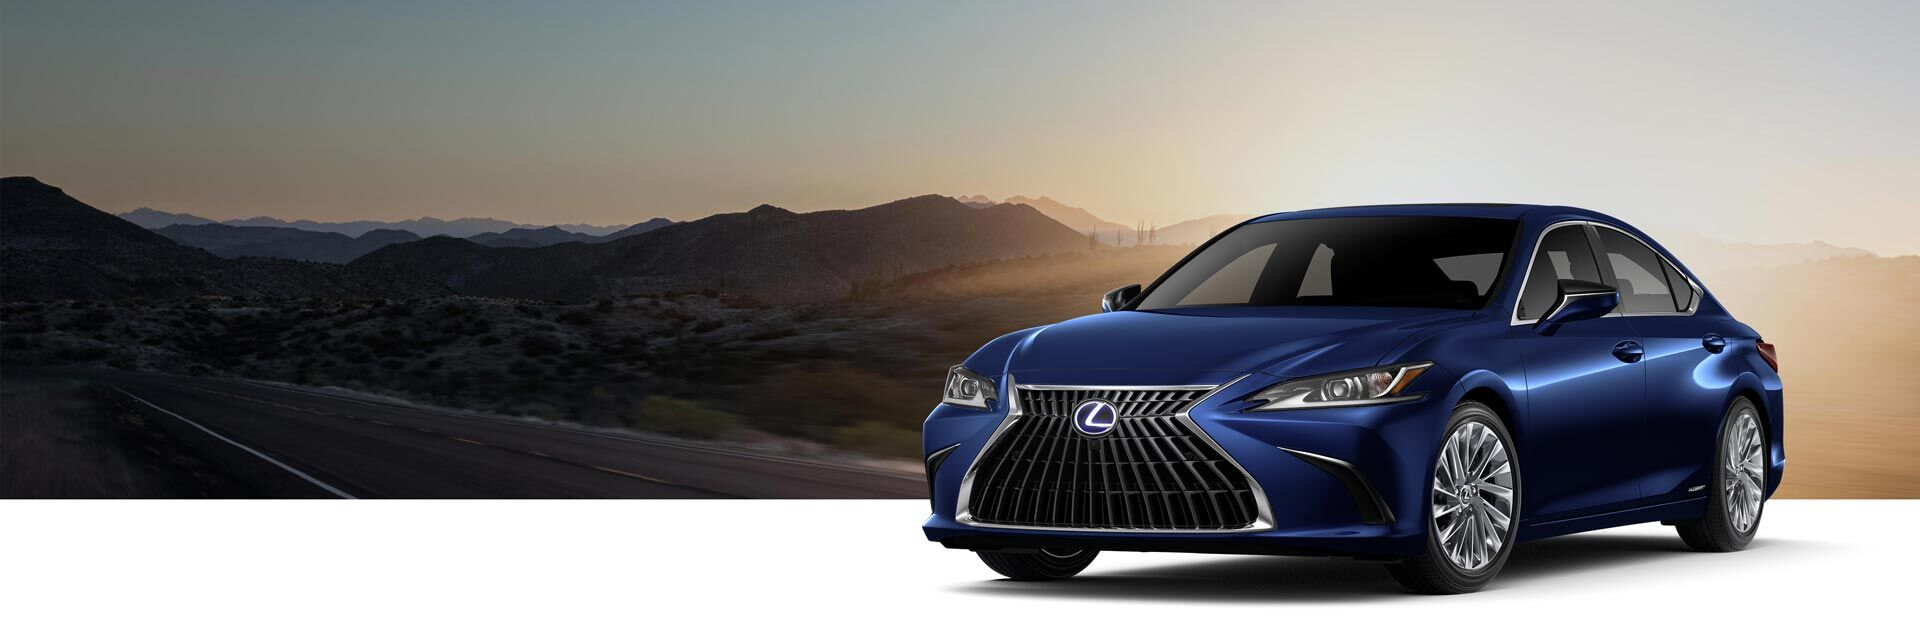 Exterior of the Lexus ES 300h Ultra Luxury shown in Nightfall Mica.